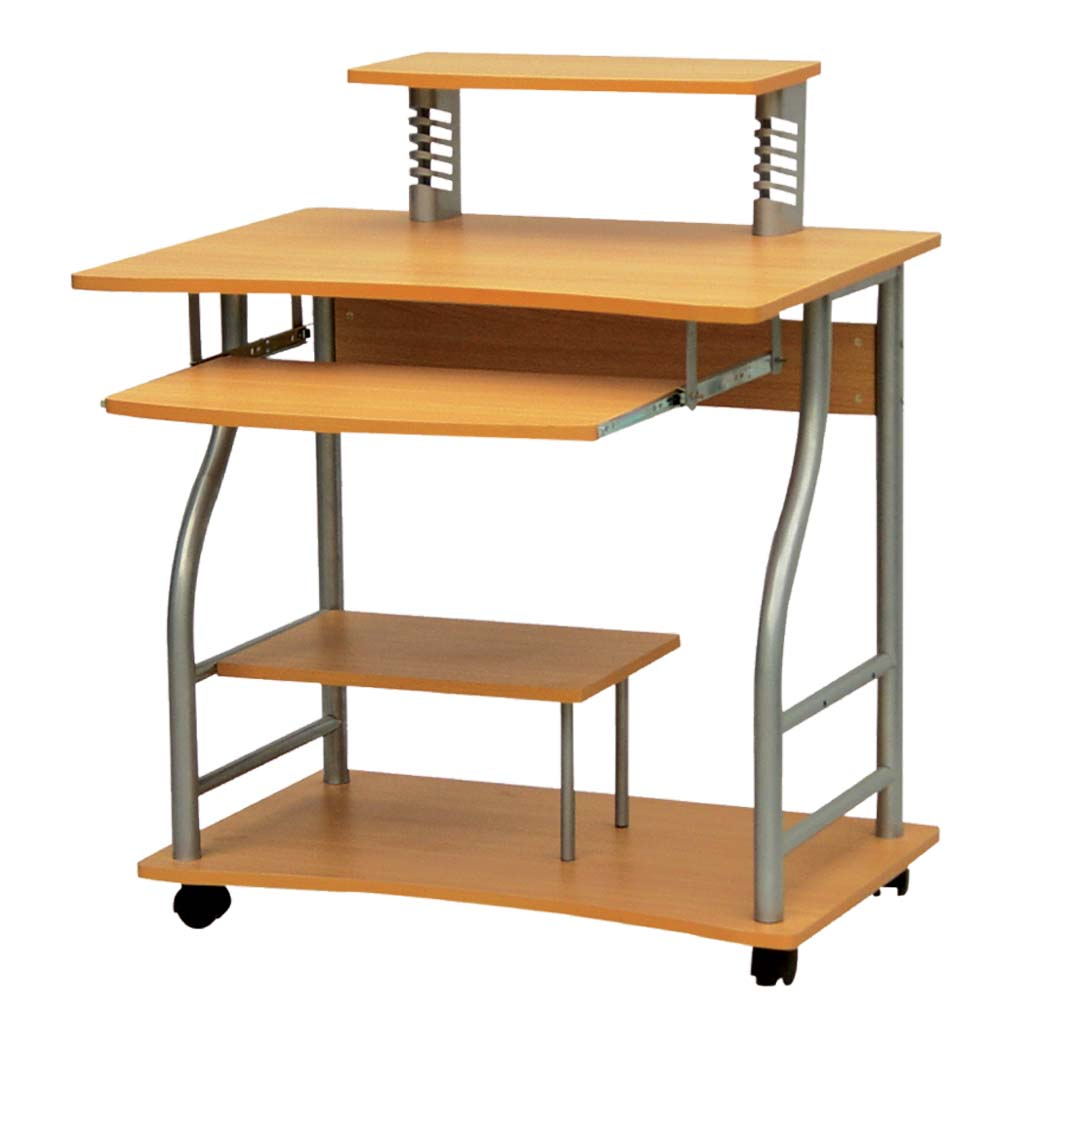 Steel And Wooden Computer Table On Wheels - Buy Computer Table On